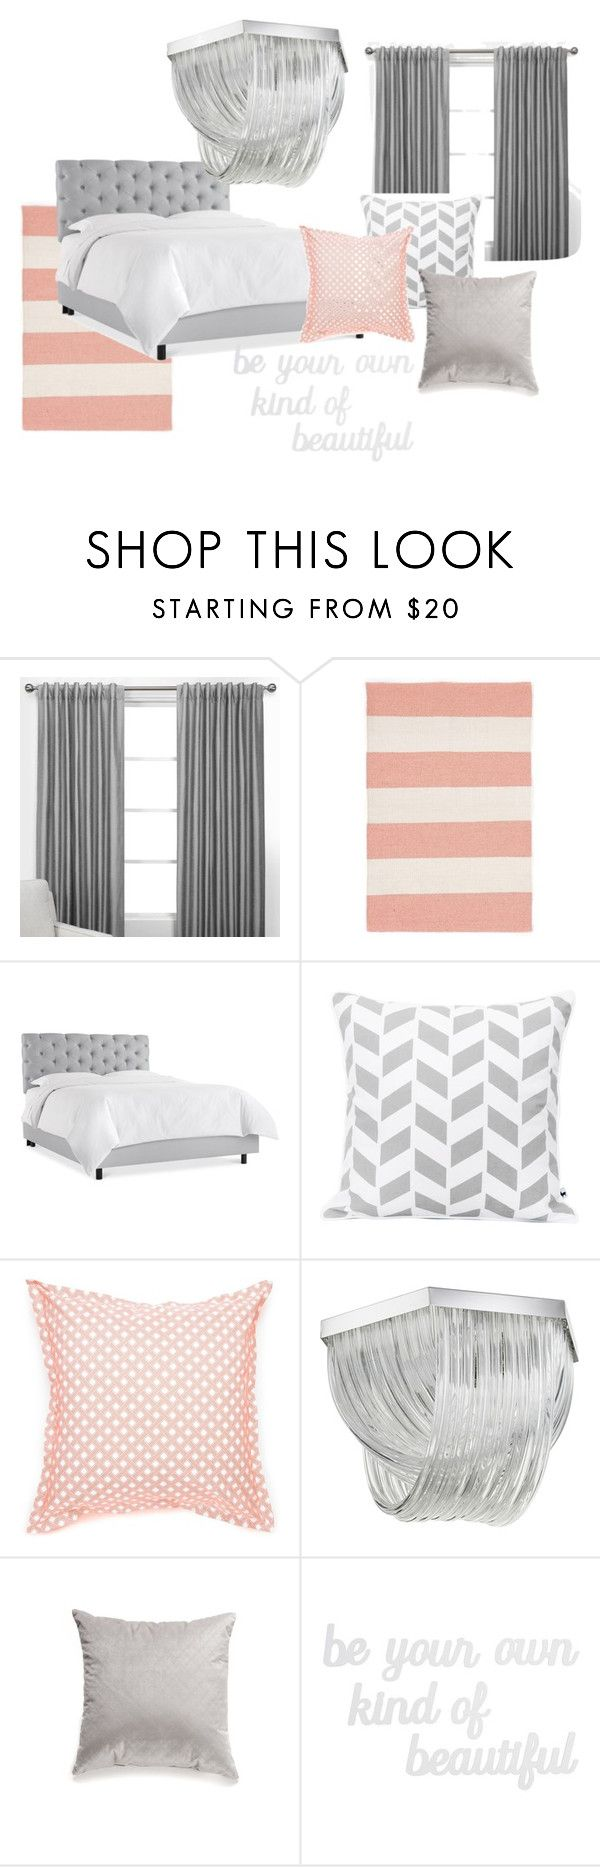 """Grey peach bedroom"" by niratheone on Polyvore featuring interior, interiors, interior design, home, home decor, interior decorating, Dash & Albert, Jonathan Adler, Home Fashions International and PBteen"